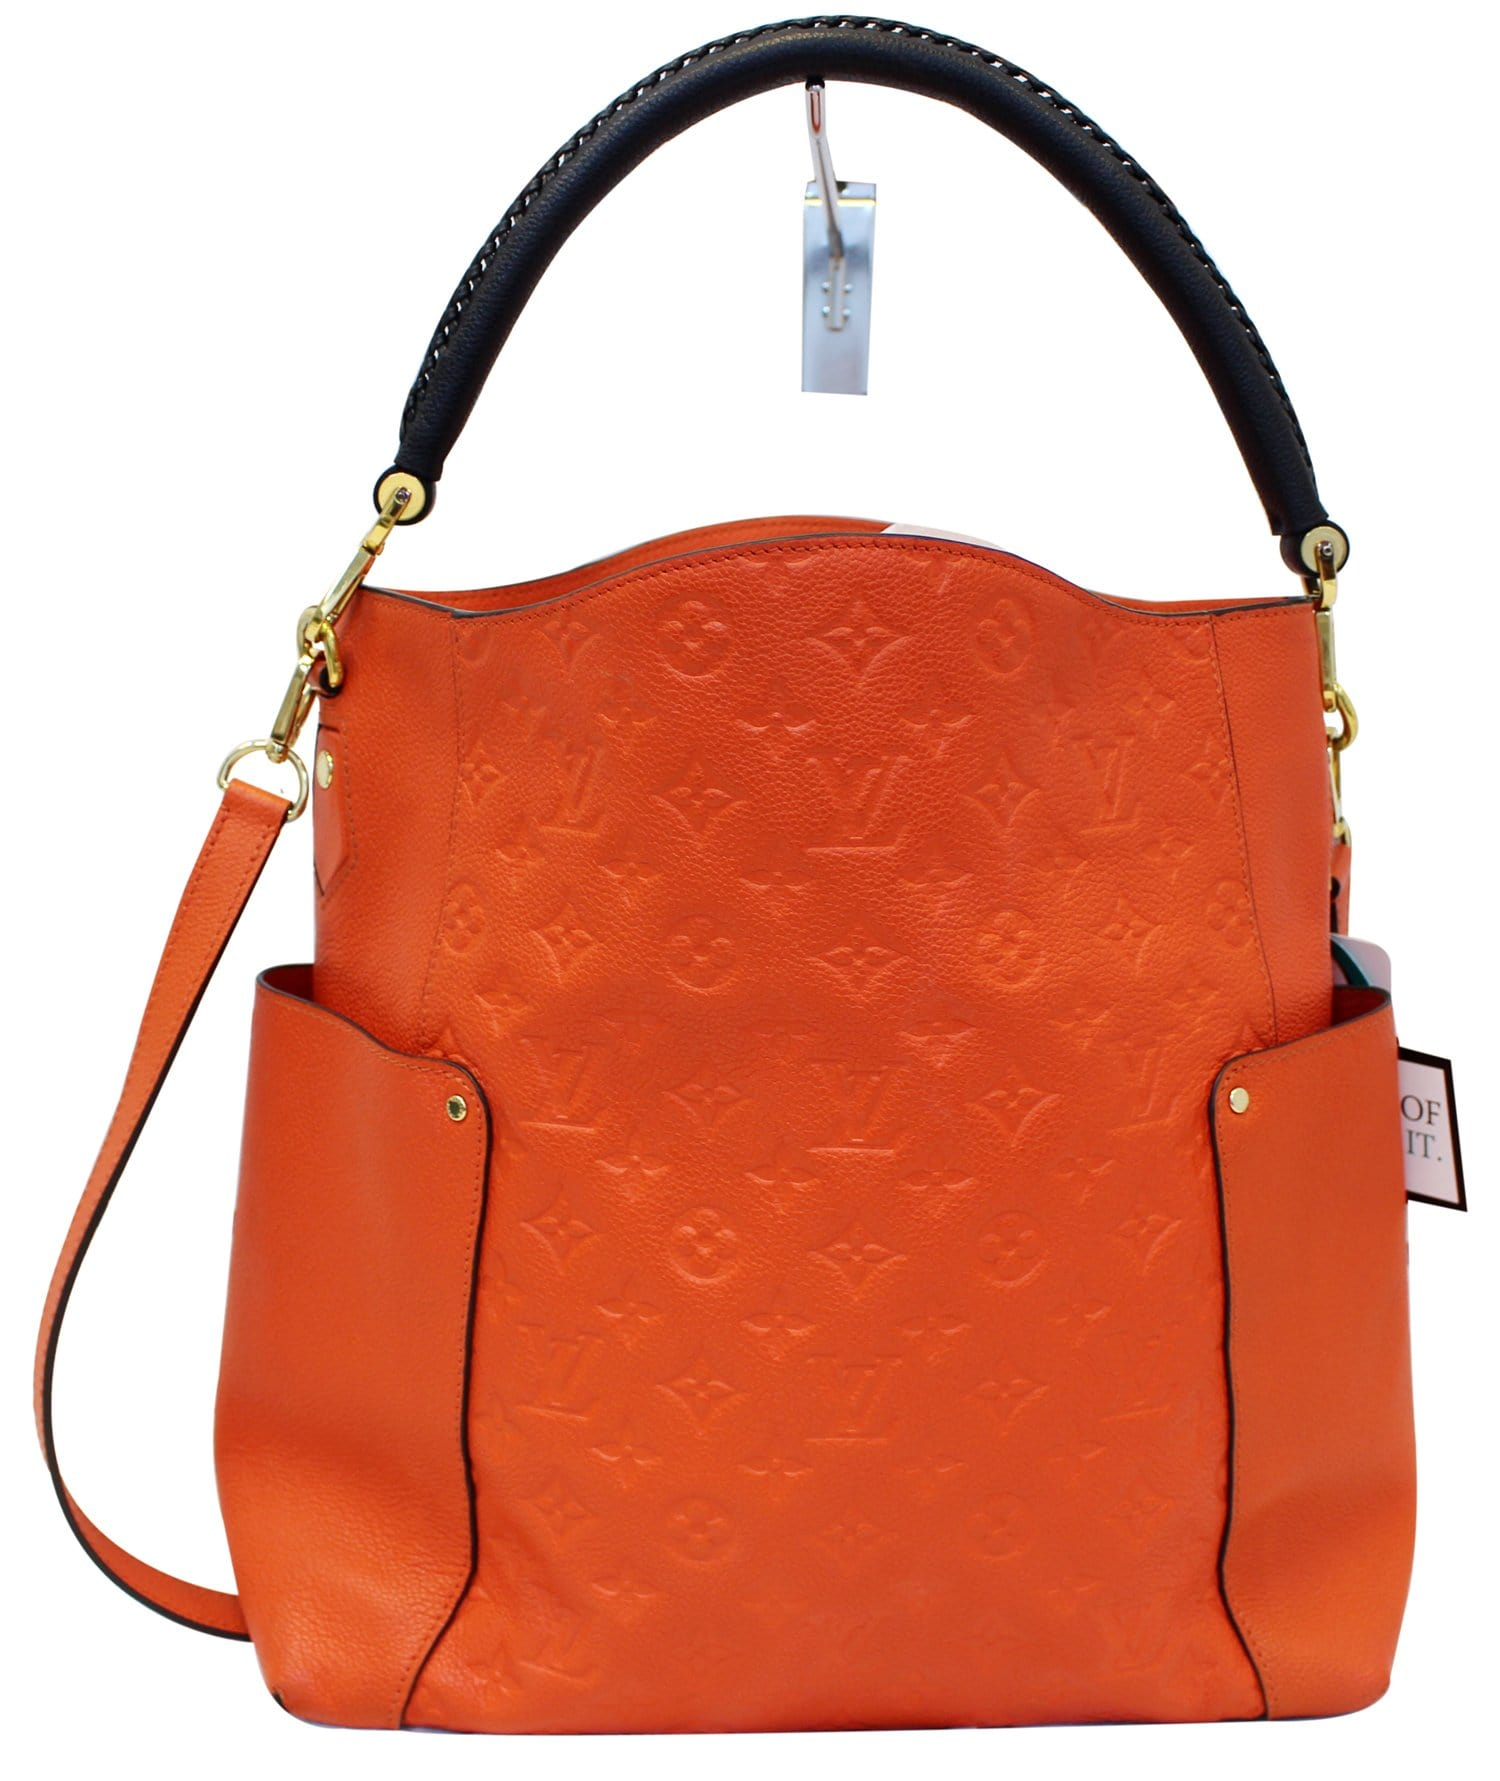 26cc042ed7a7 LOUIS VUITTON Orange Monogram Empreinte Leather Bagatelle Shoulder ...